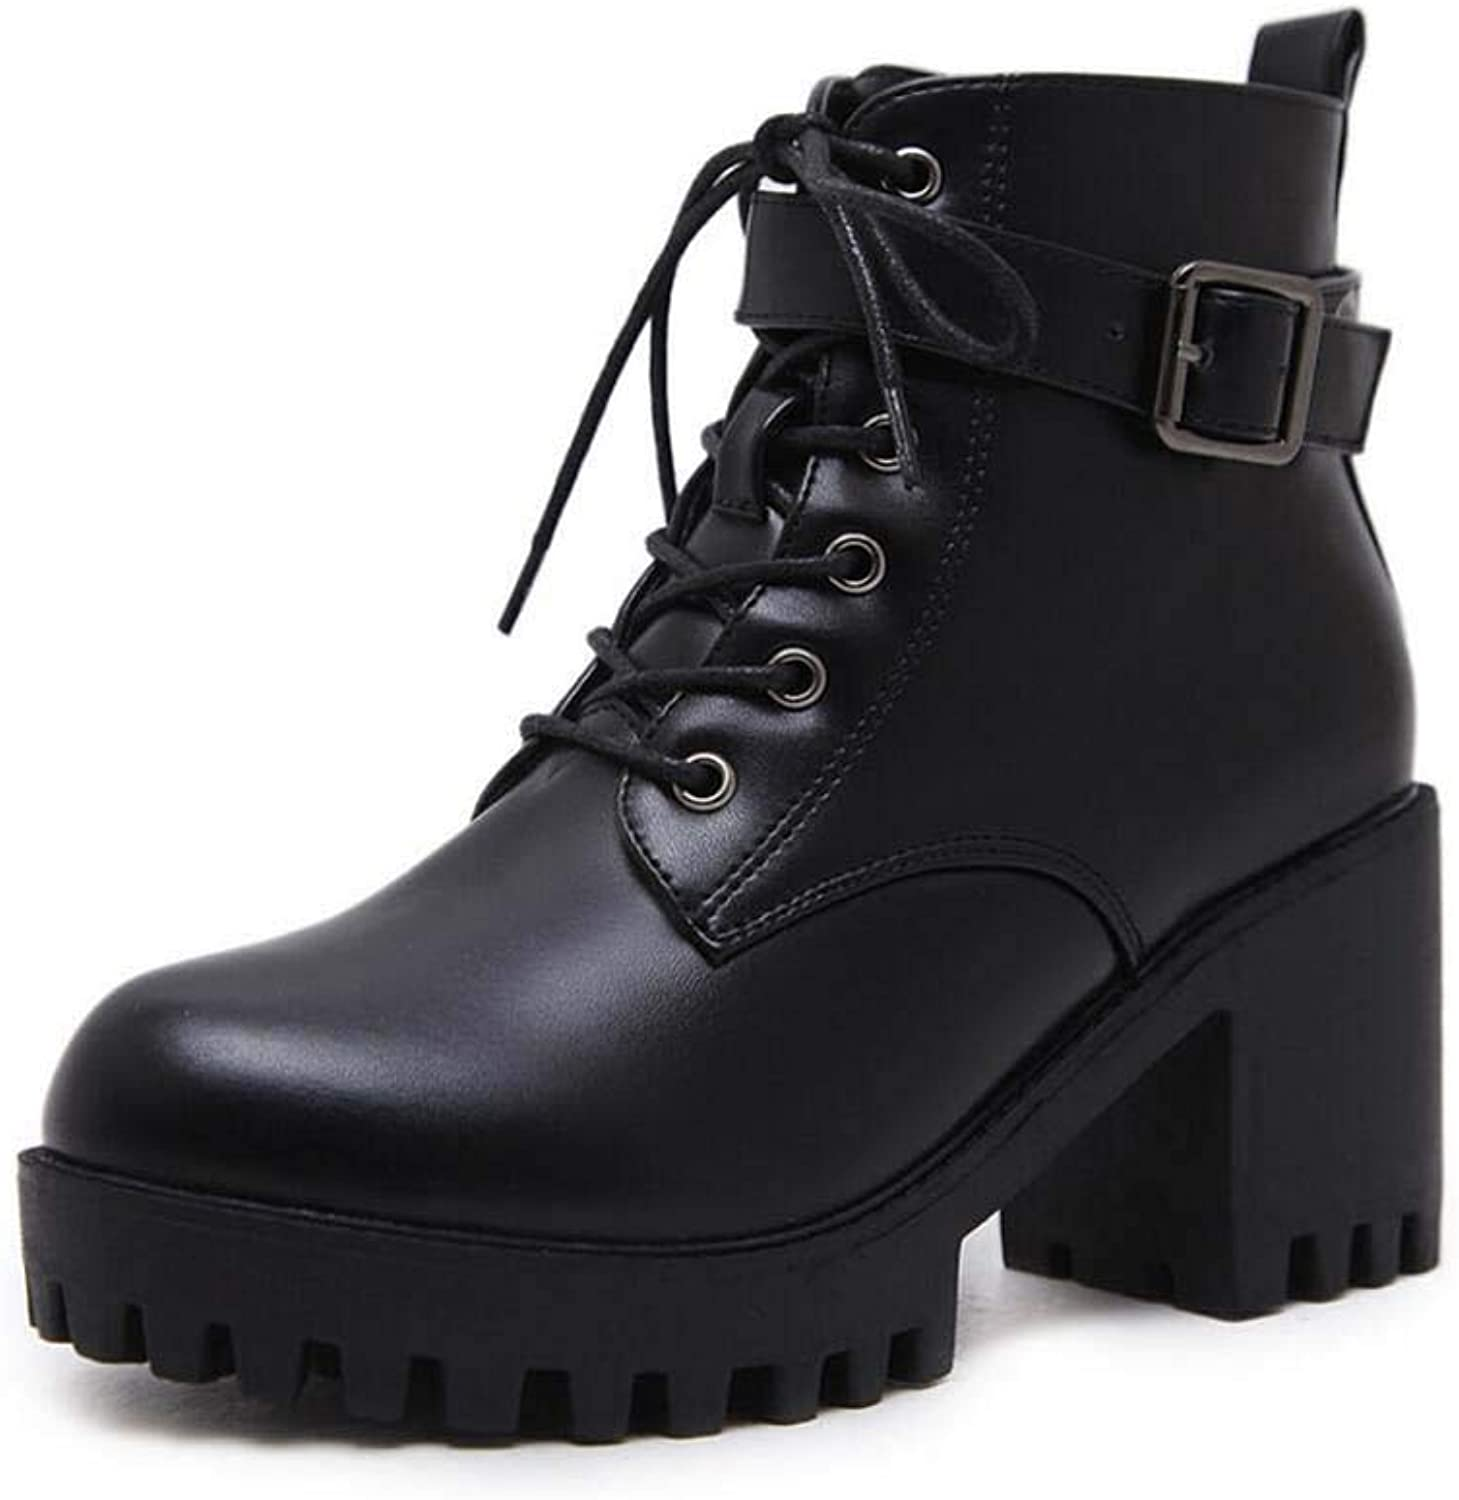 Tall Bootie Women Martin Boots Knight Boots Round Toe Low Heel Lace Up Belt Buckle Ankle Boots EU Size 34-40